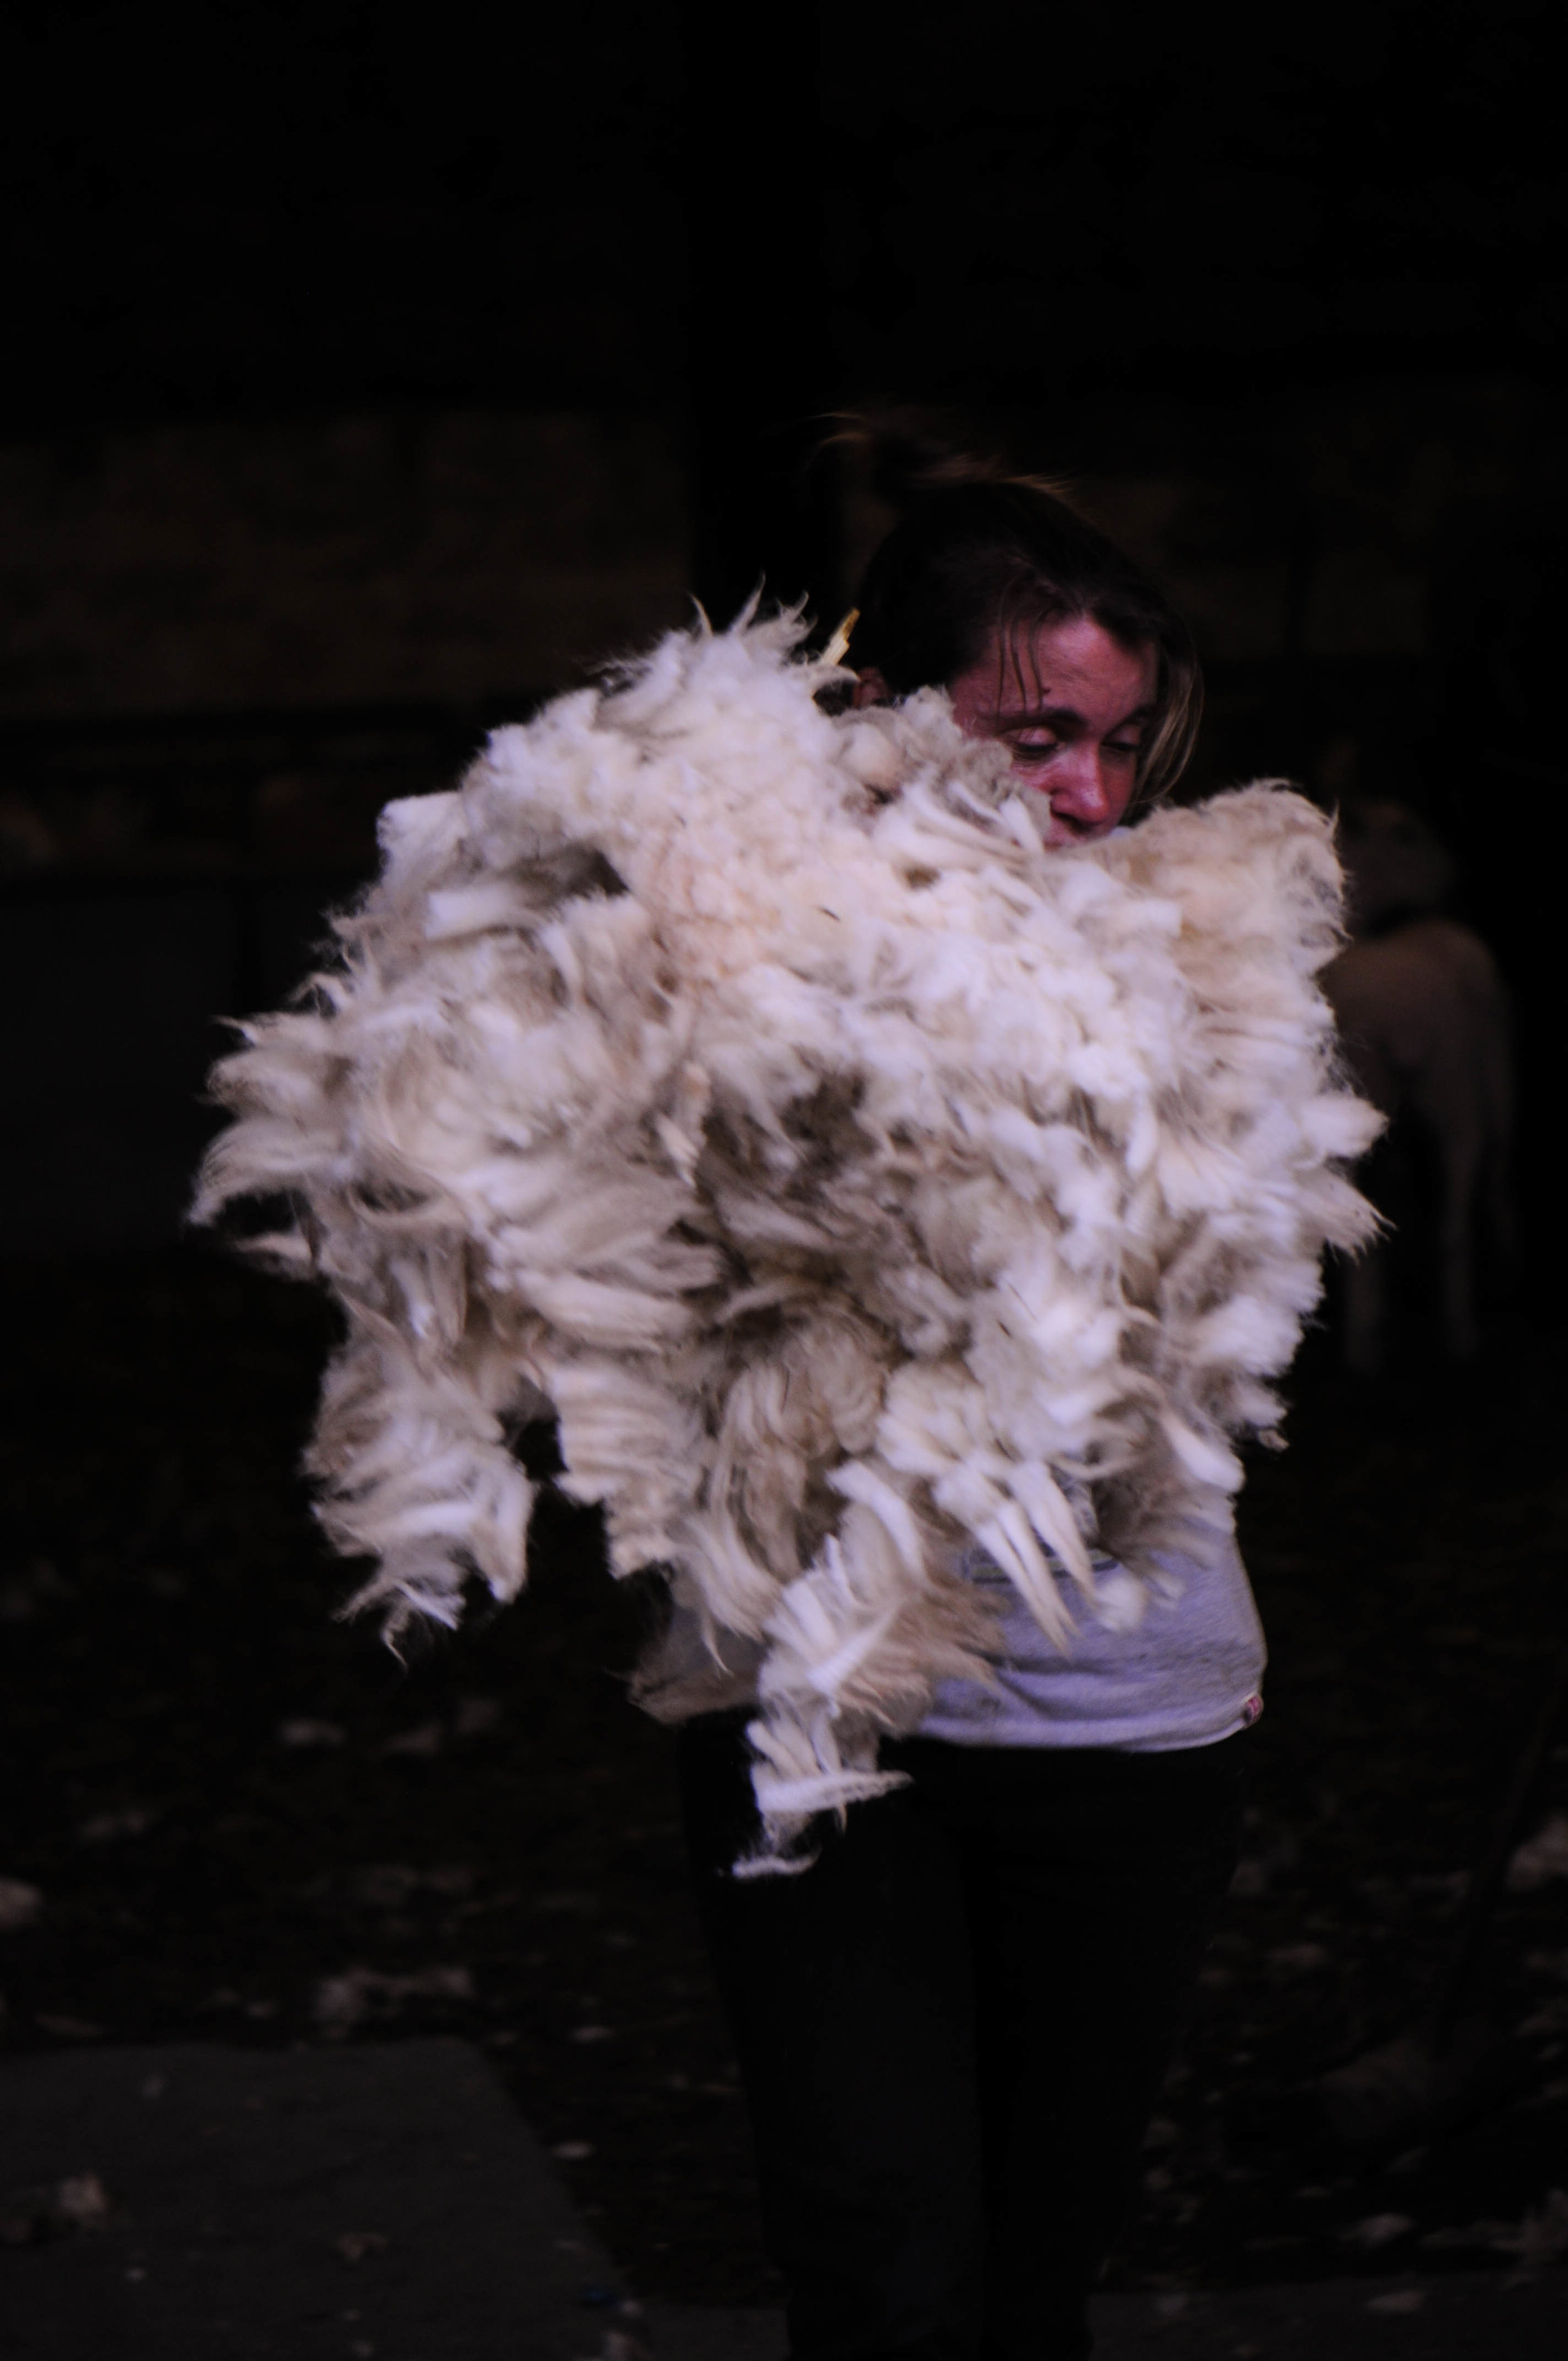 shepherdess during shearing-1.jpg